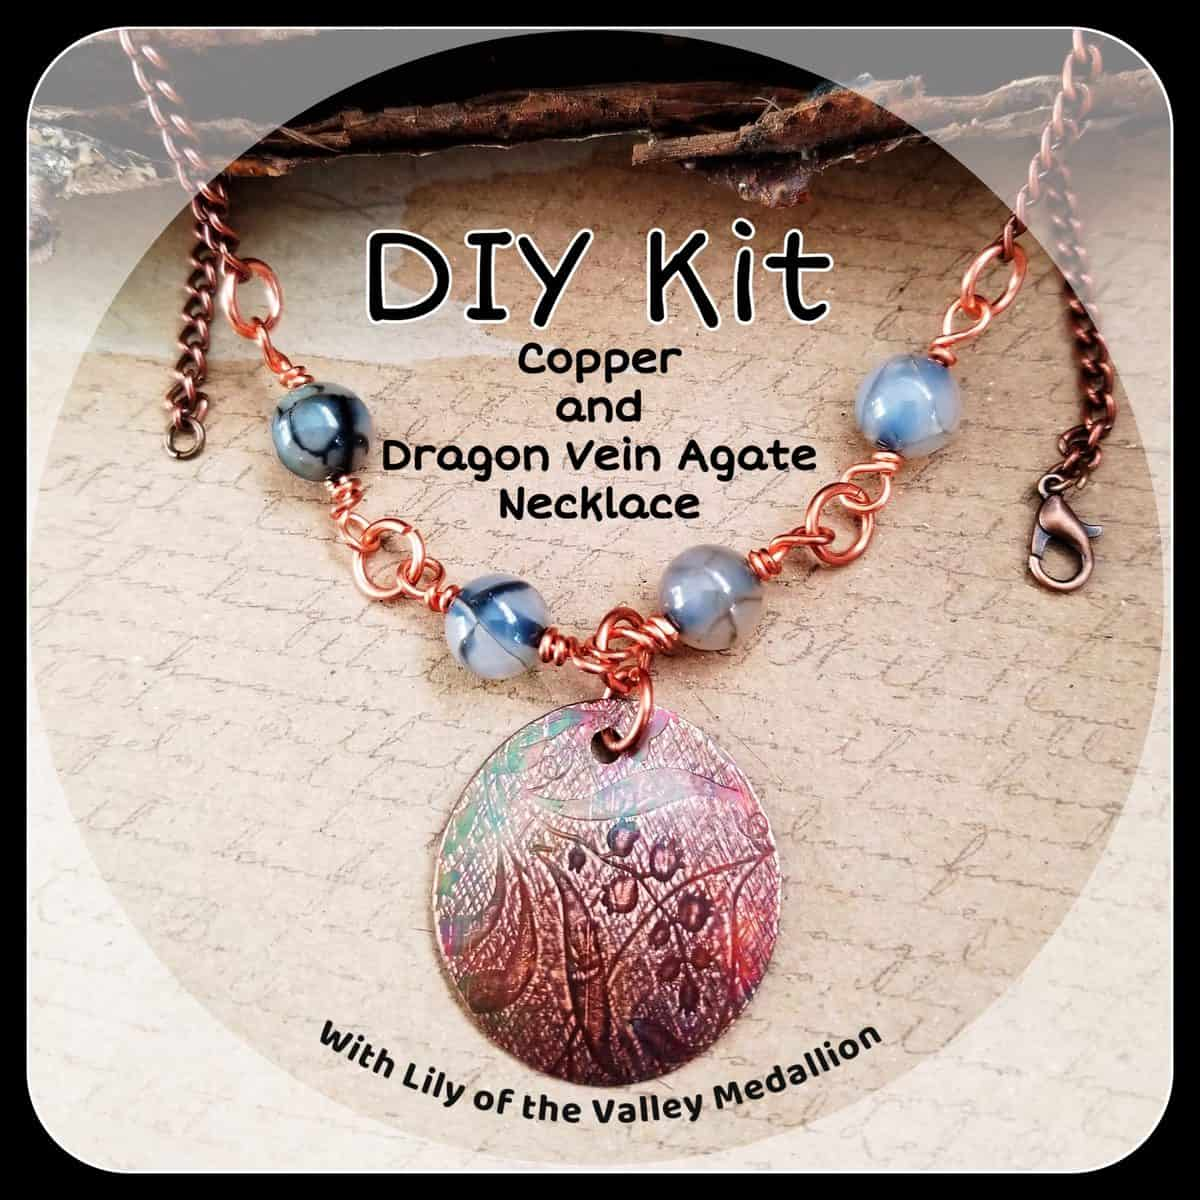 DIY Copper and Dragon Vein Agate Necklace Kit with Optional Pendants Charms